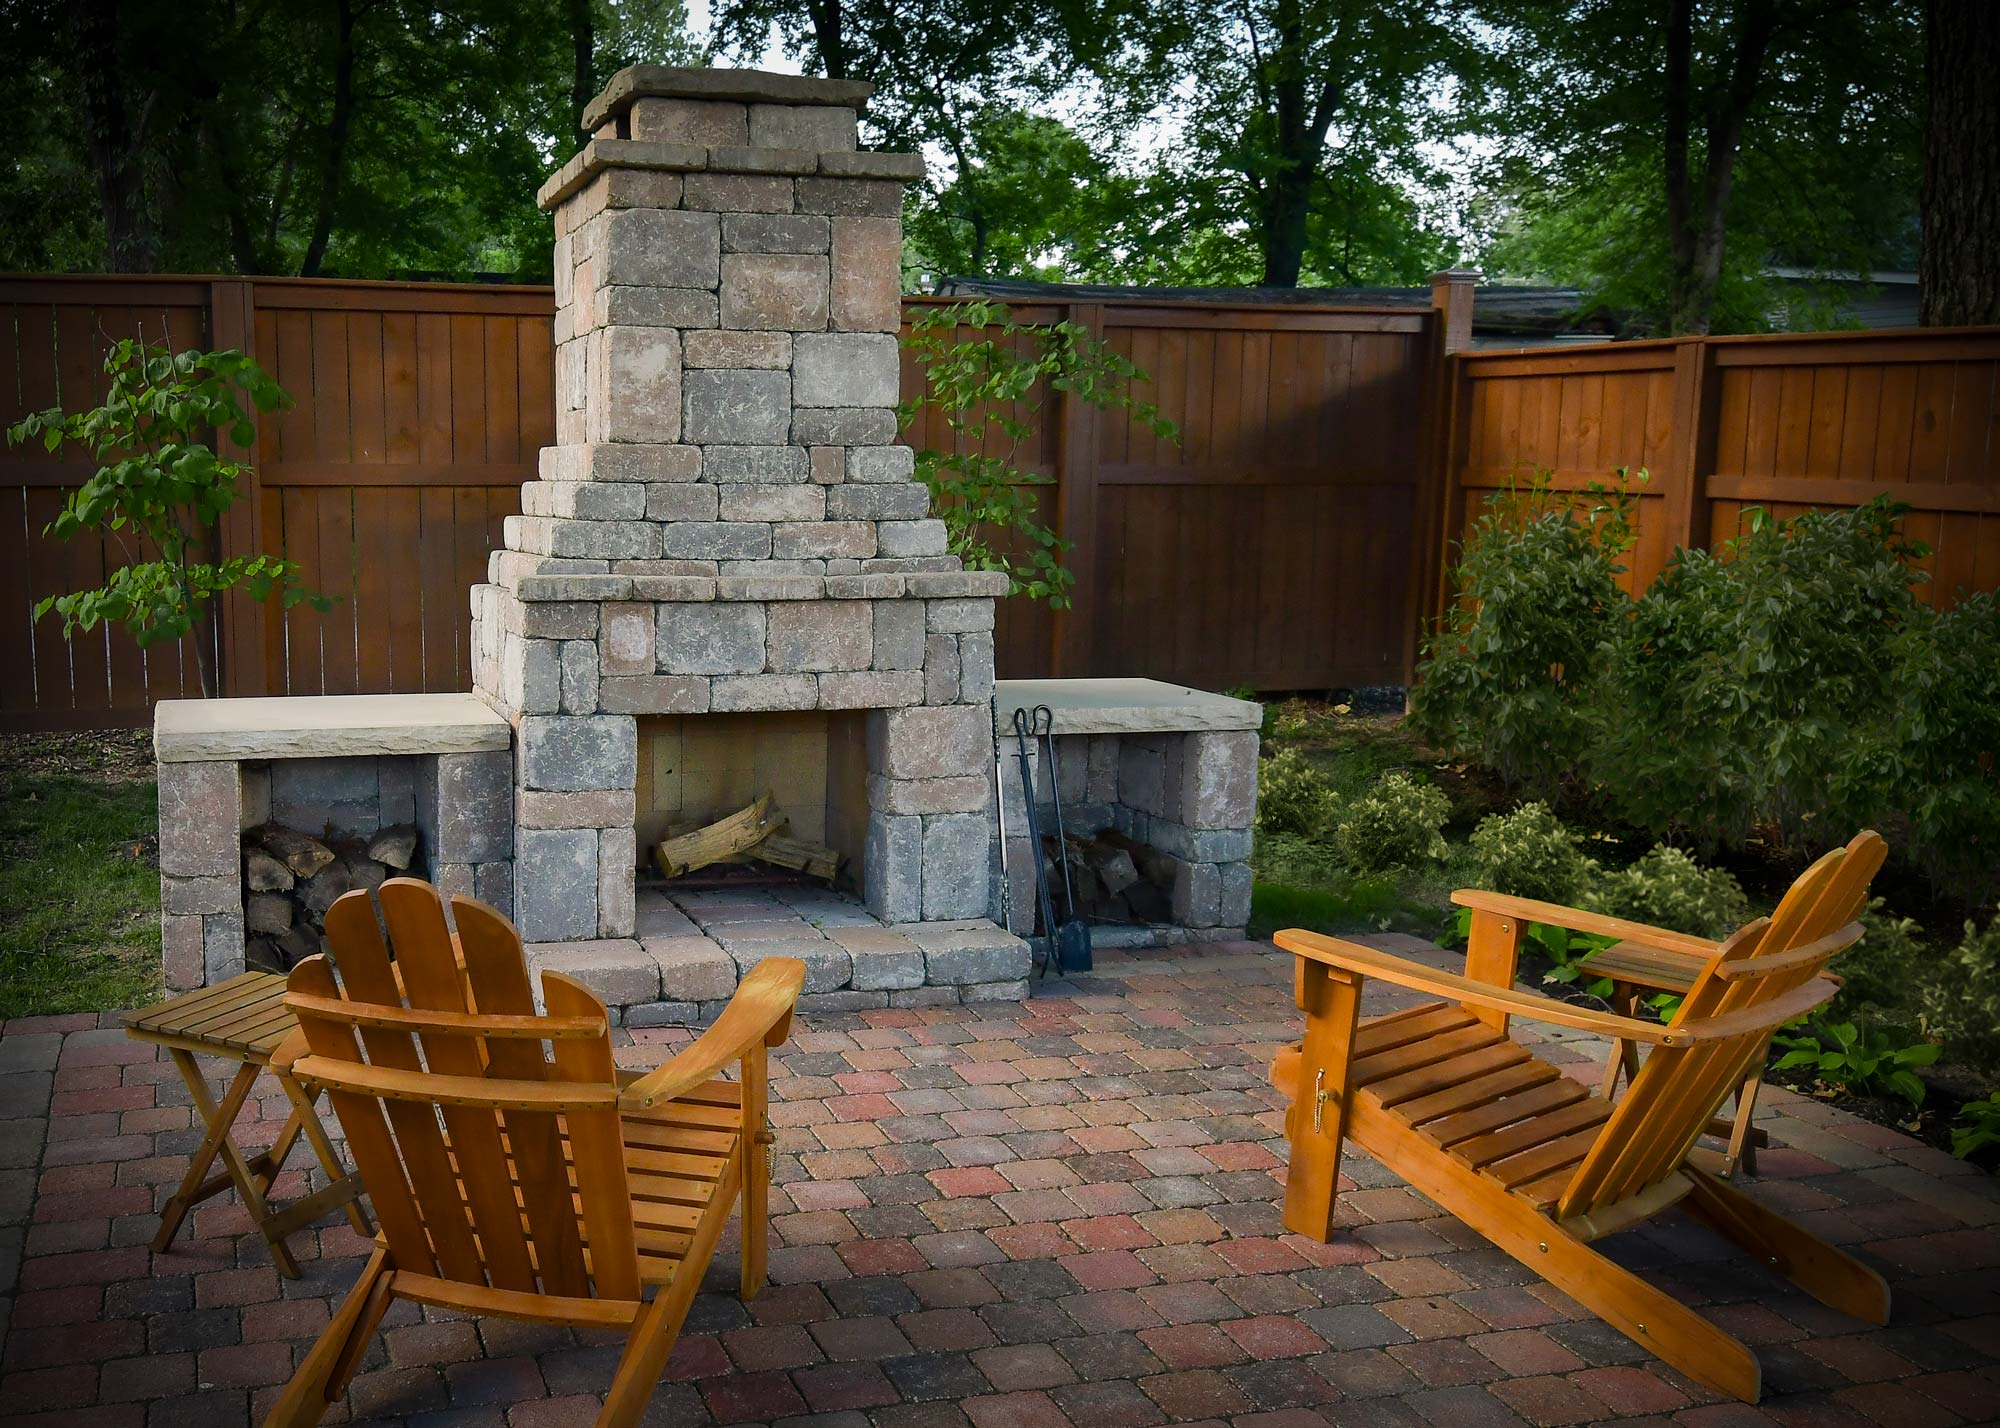 fremont_fireplace_fire_outdoor-living.jpg